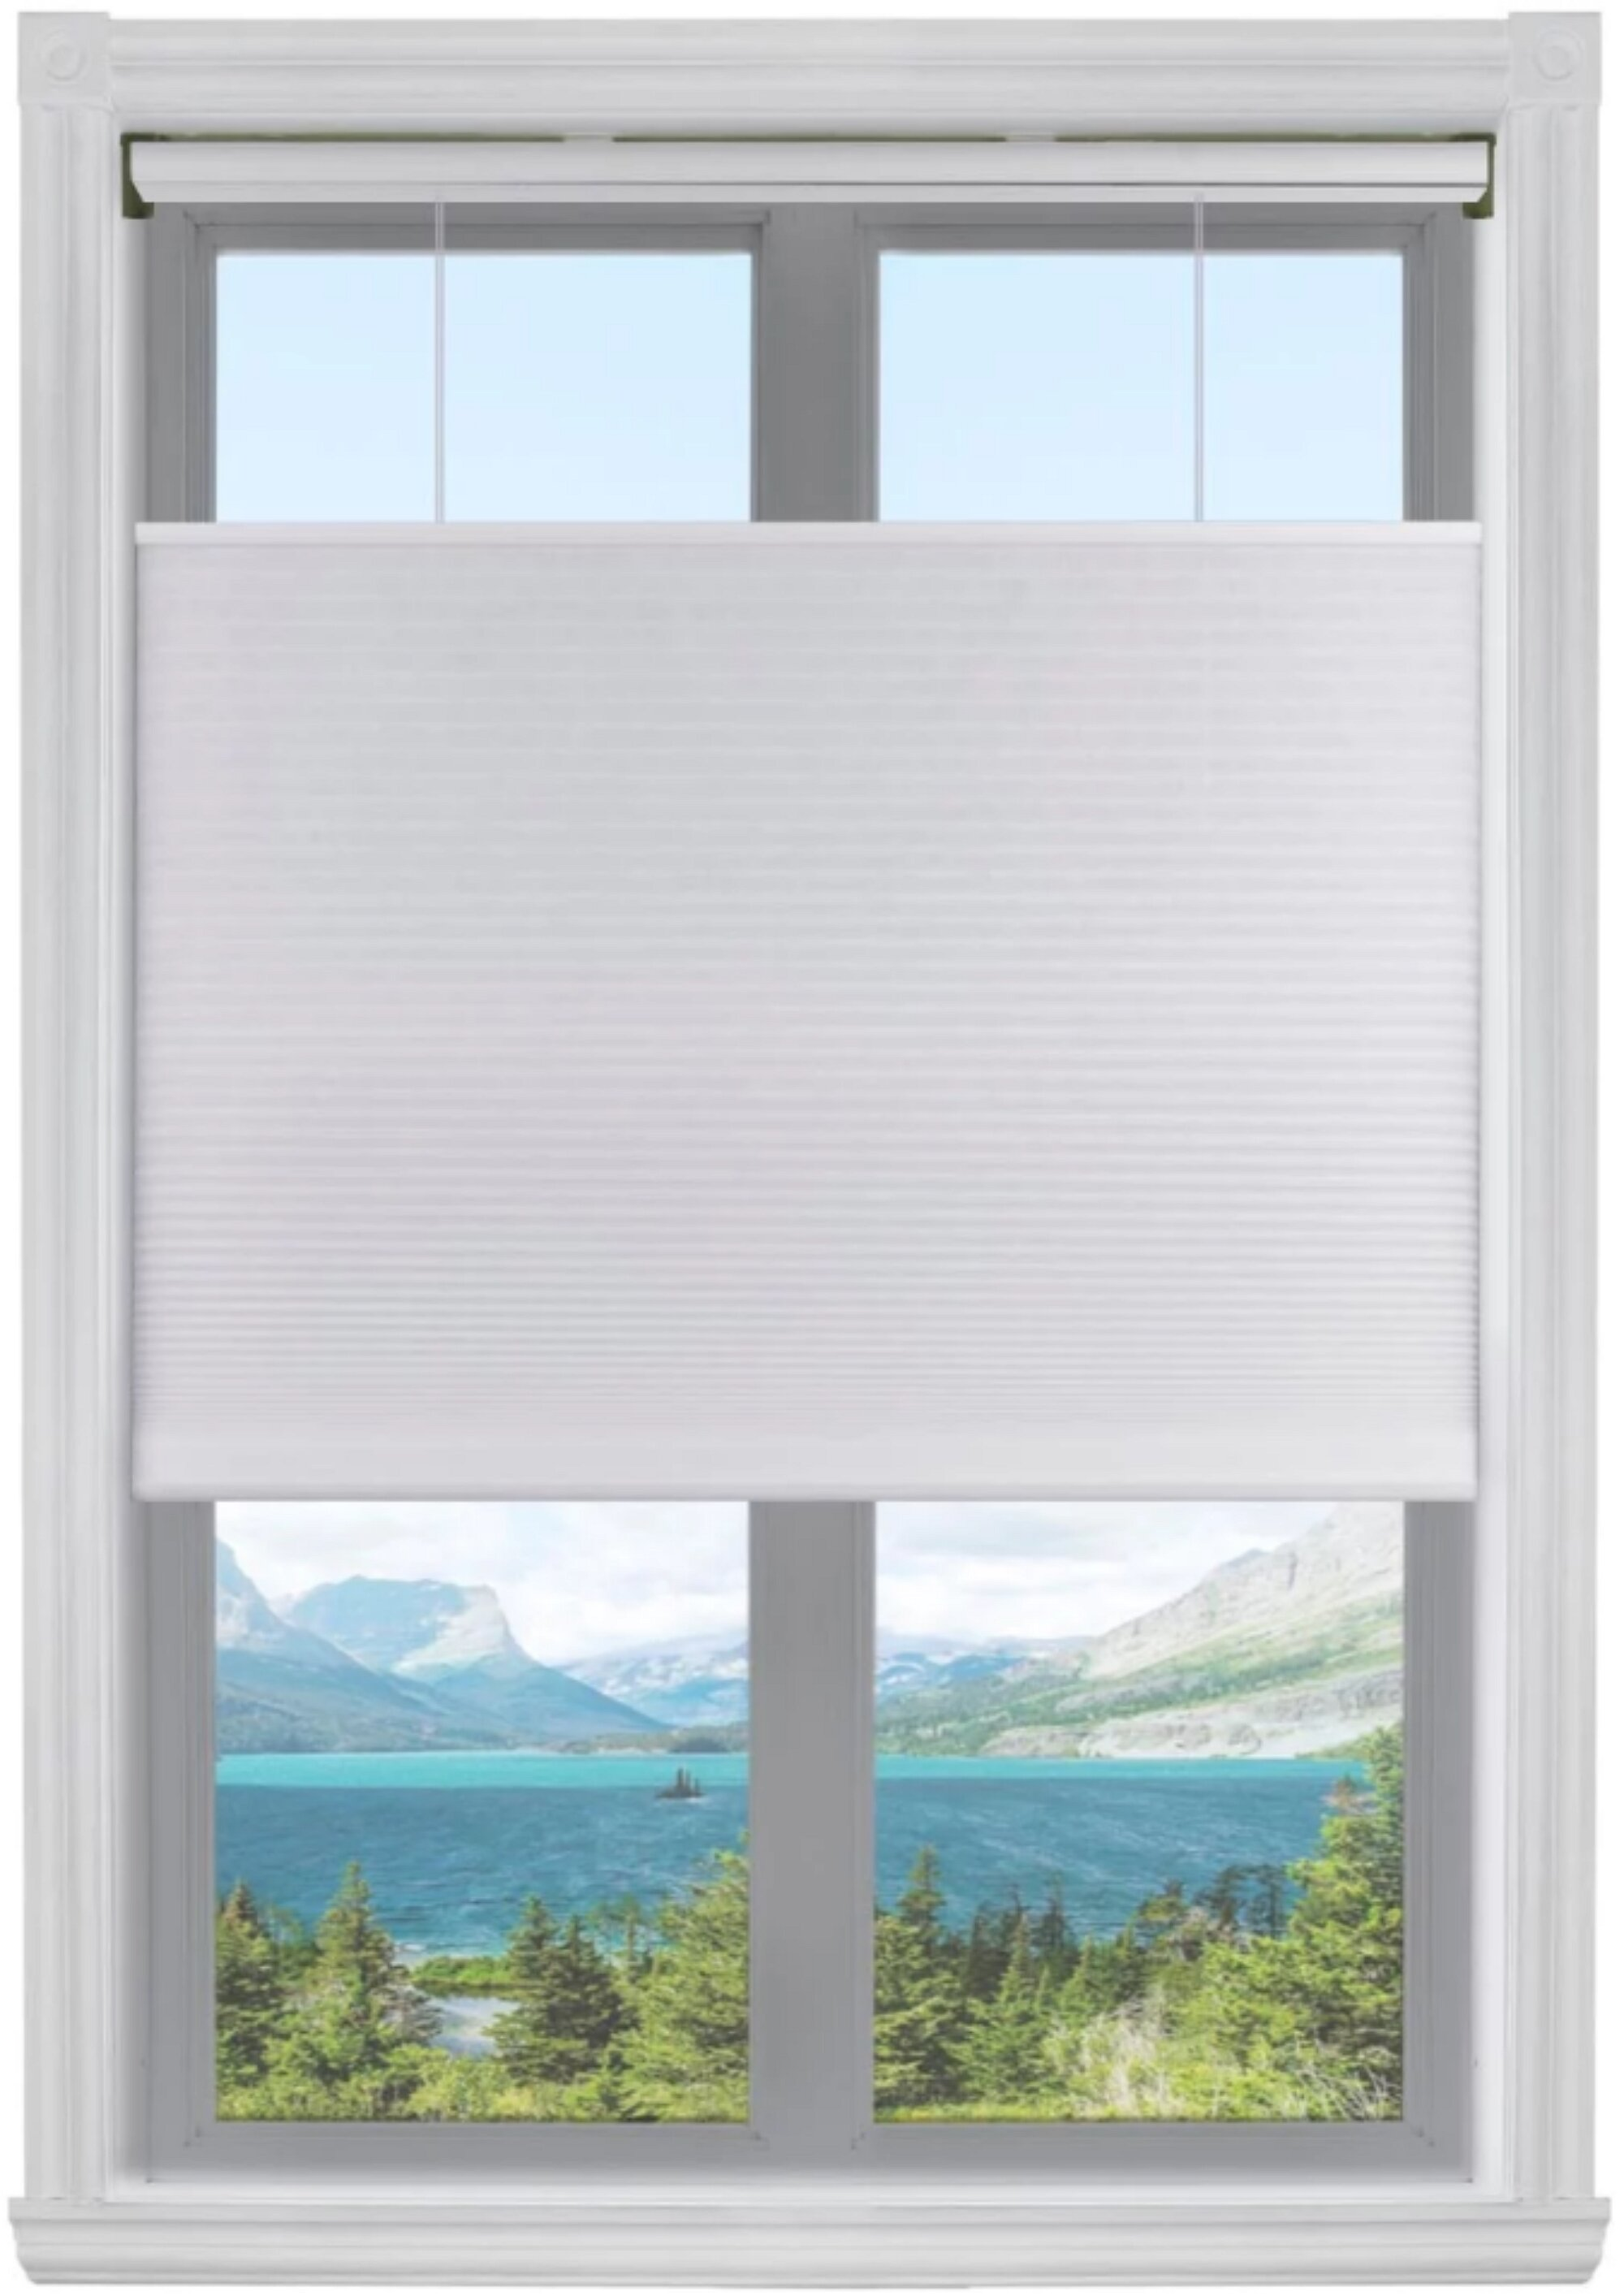 Thermal Blinds Shades You Ll Love In 2021 Wayfair Ca